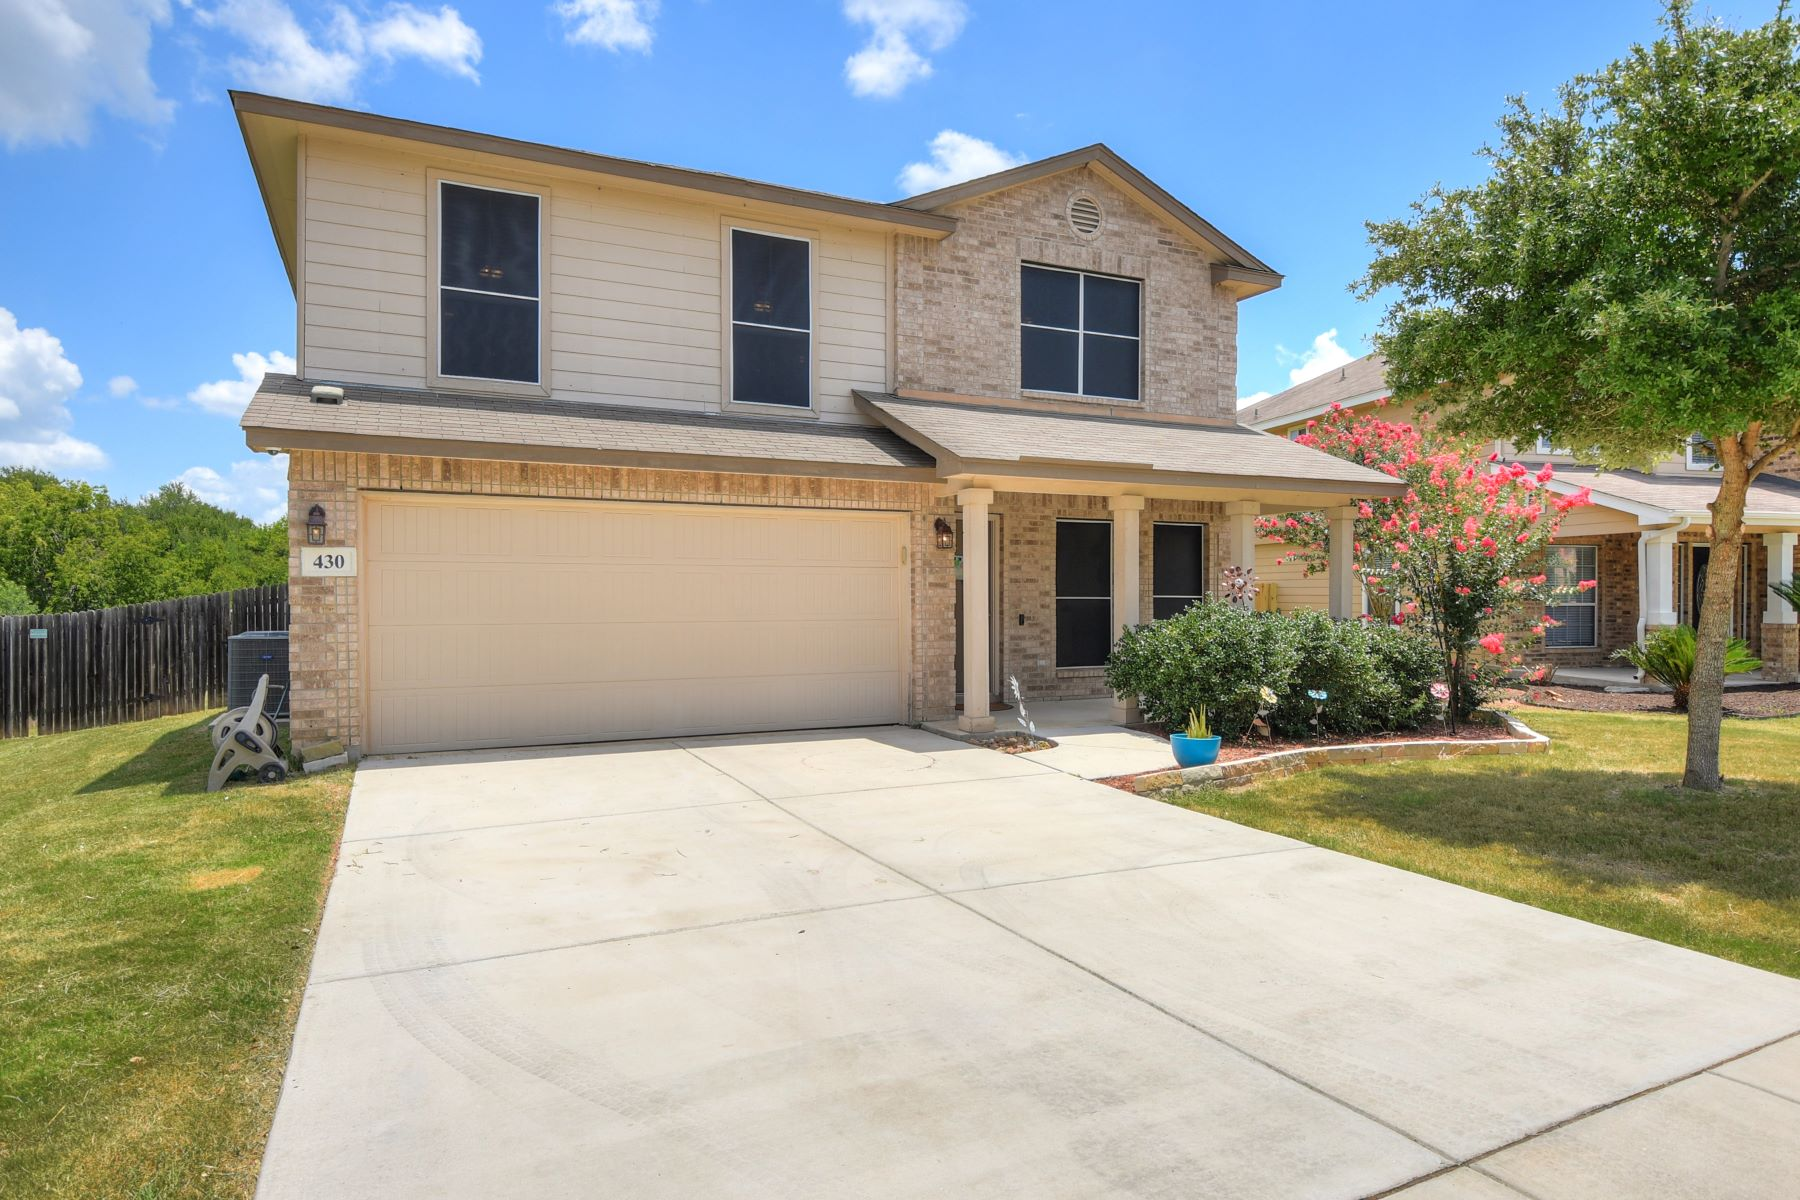 Single Family Homes for Active at Meticulously Maintained Four Bedroom Home 430 Dolly Dr Converse, Texas 78109 United States